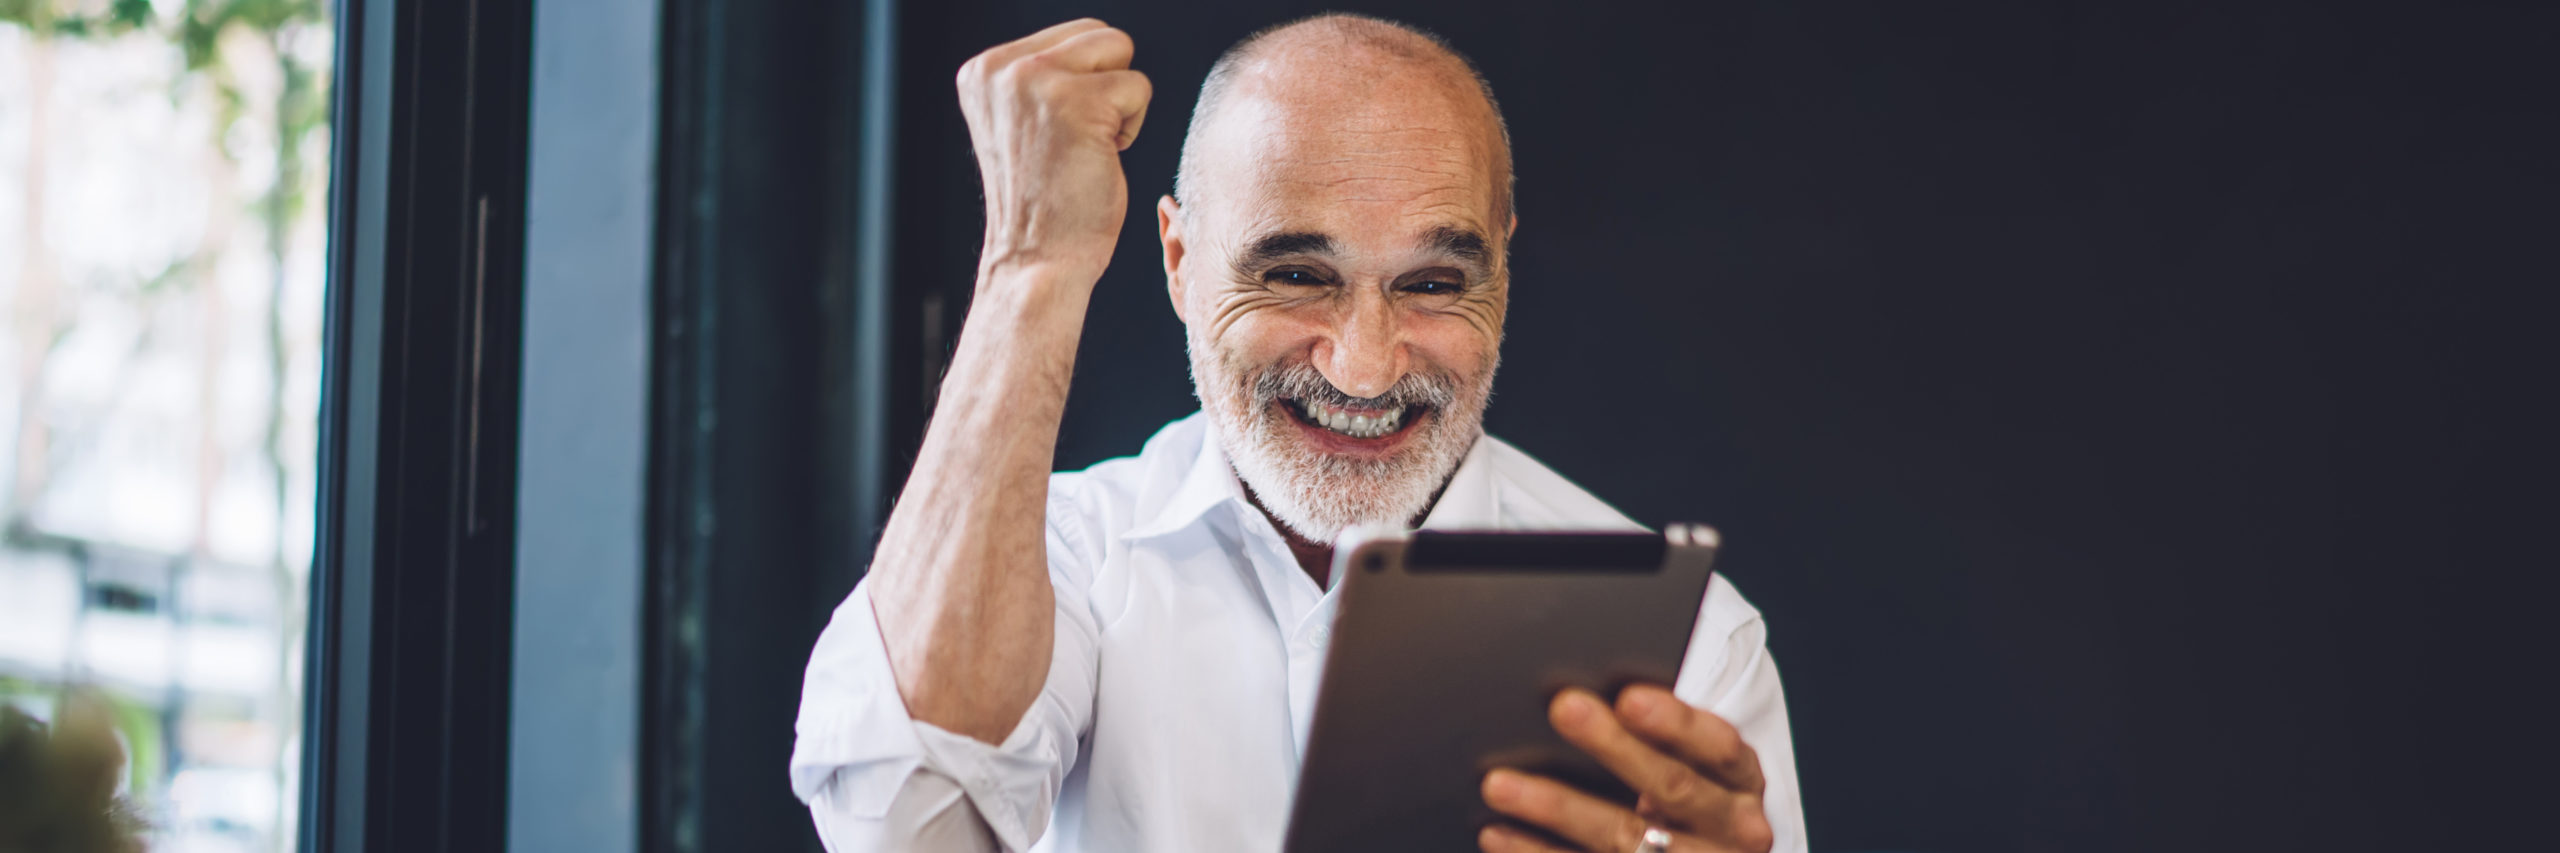 Man with tablet excited and happy with fist in the air